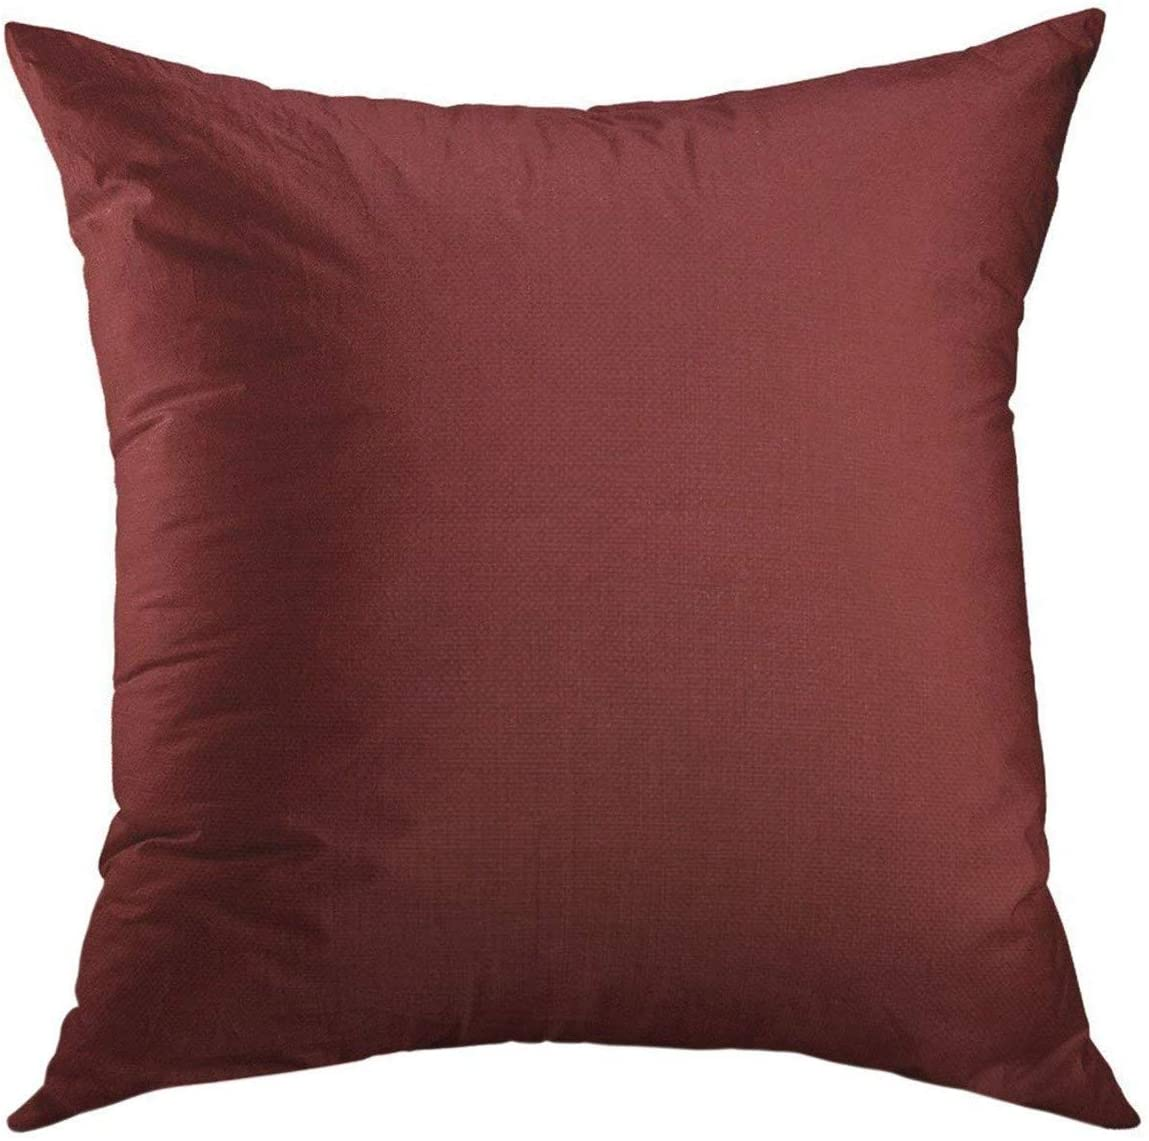 Mugod Decorative Throw Pillow Cover for Couch Sofa,Red Solid Burgandy Purple Color Home Decor Pillow Case 18x18 Inch